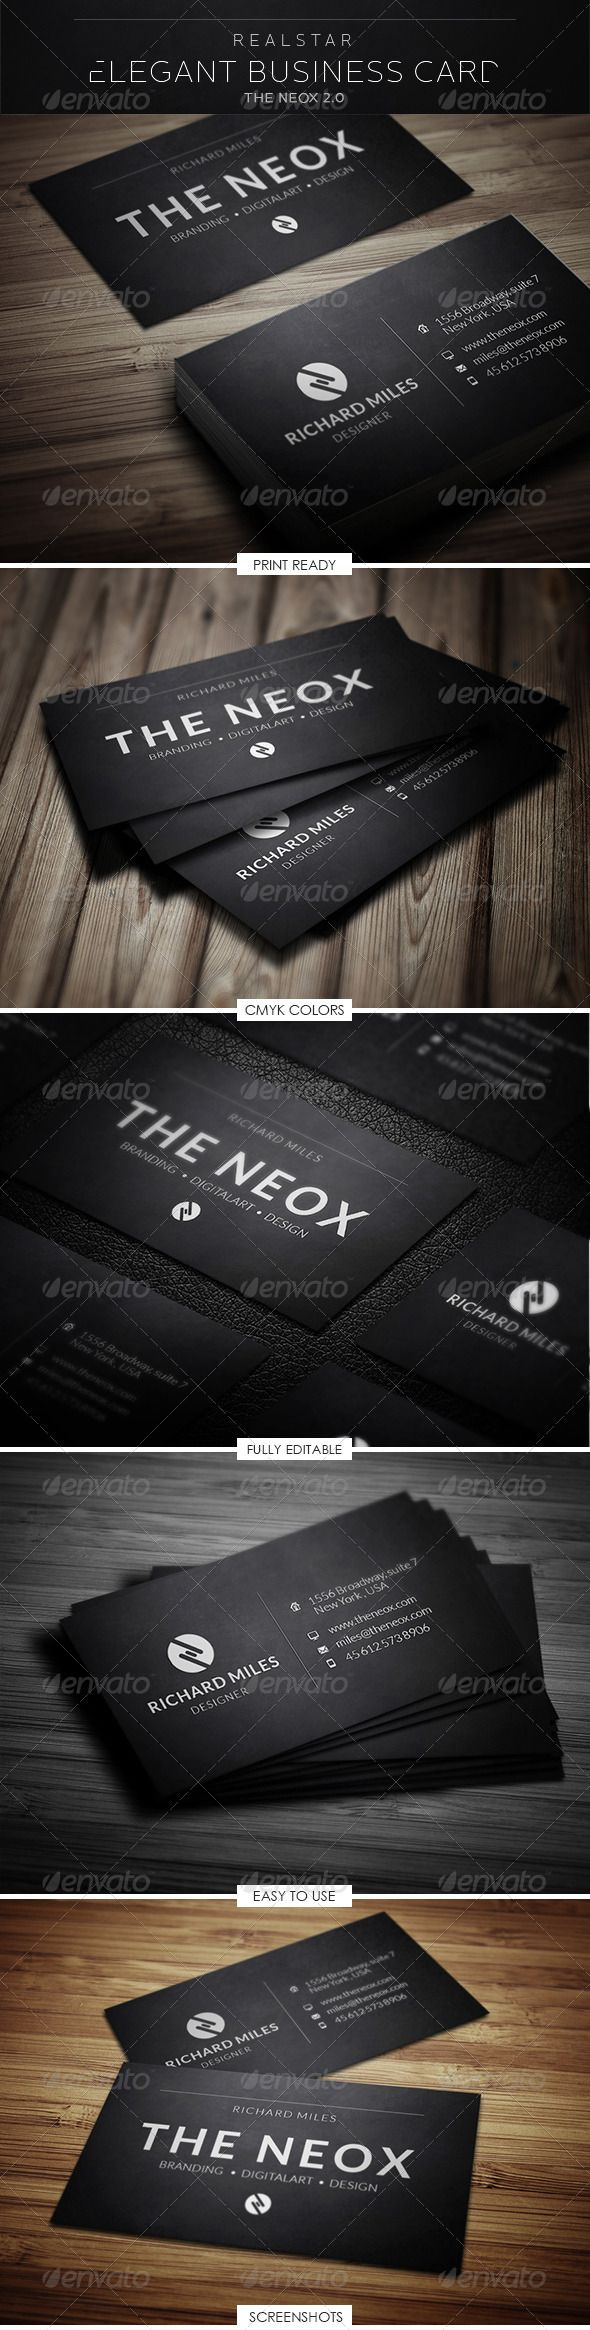 84 best print templates images on pinterest print templates the neox 2 corporate business card reheart Images